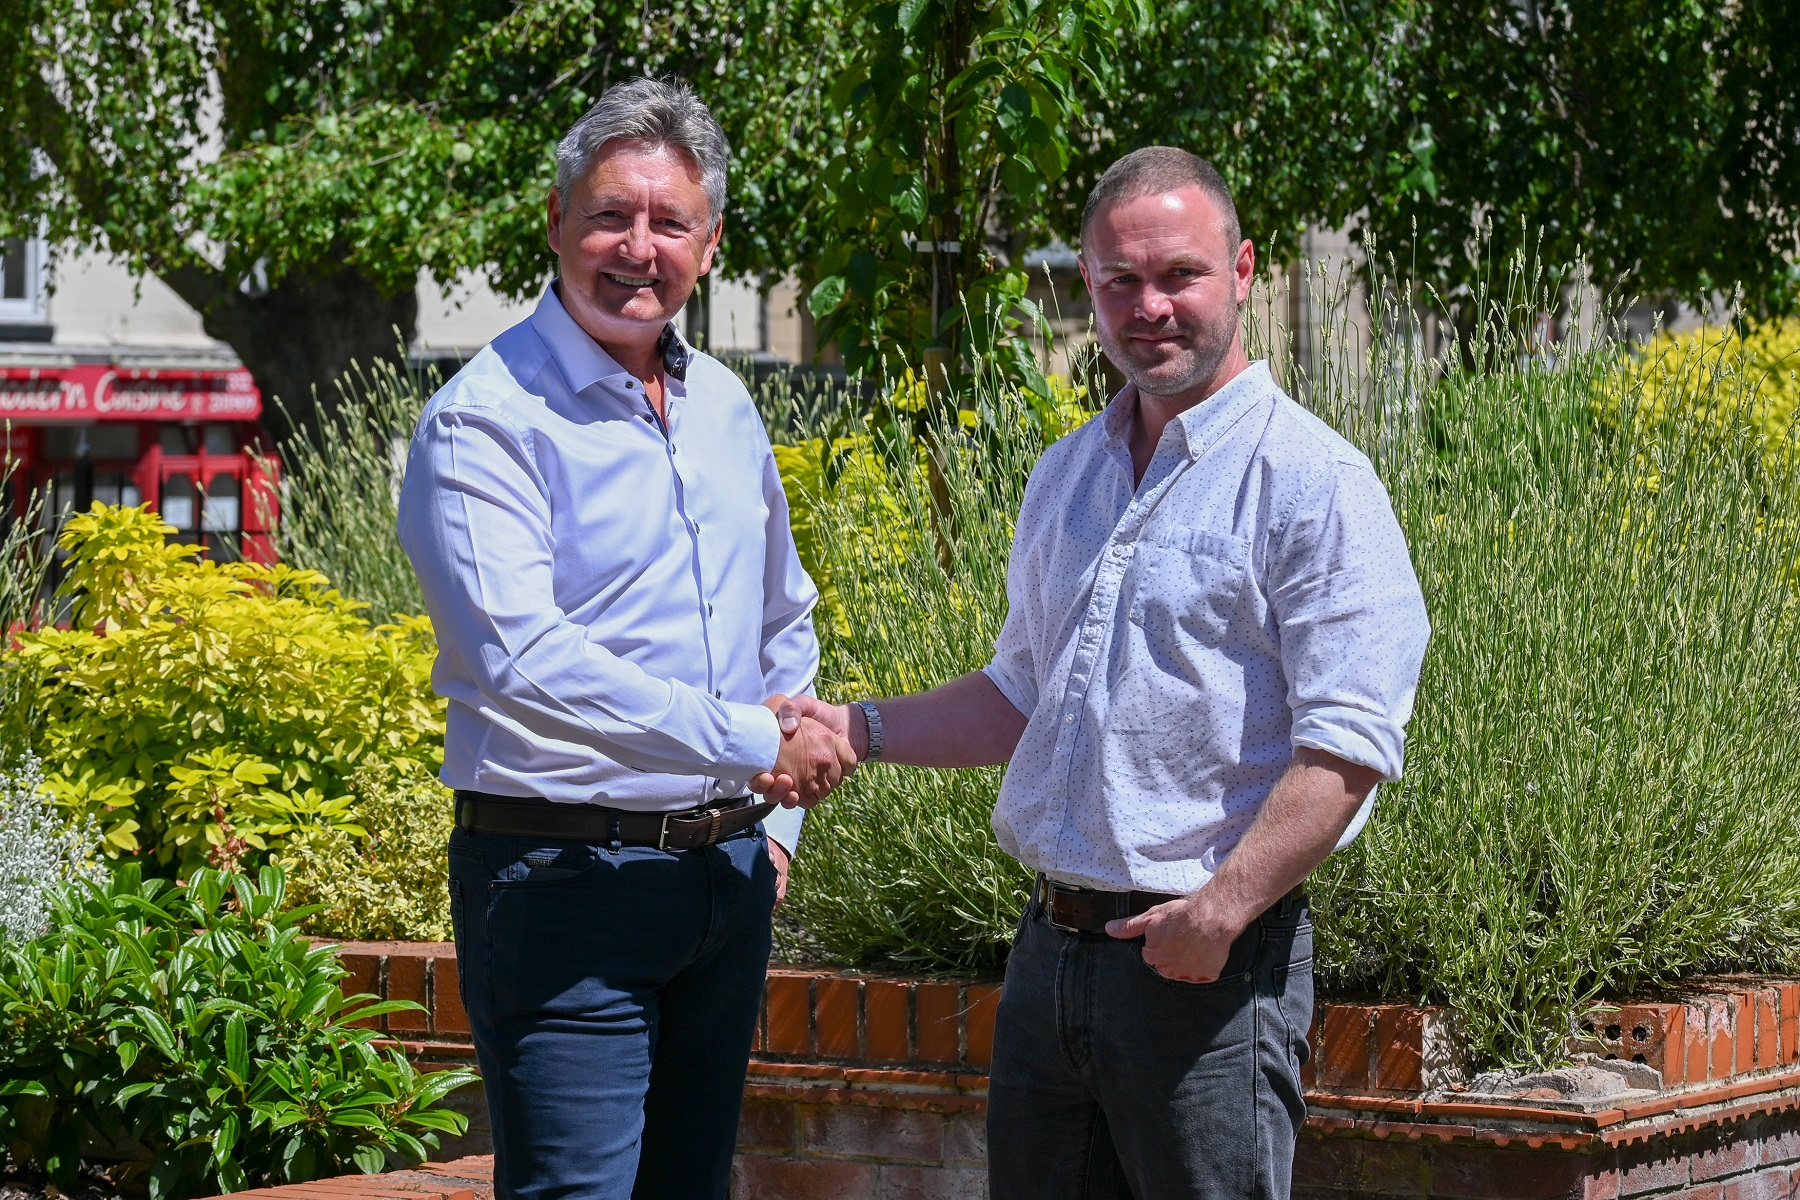 Thriving Derby agency Koobr acquires Carmichael Collective